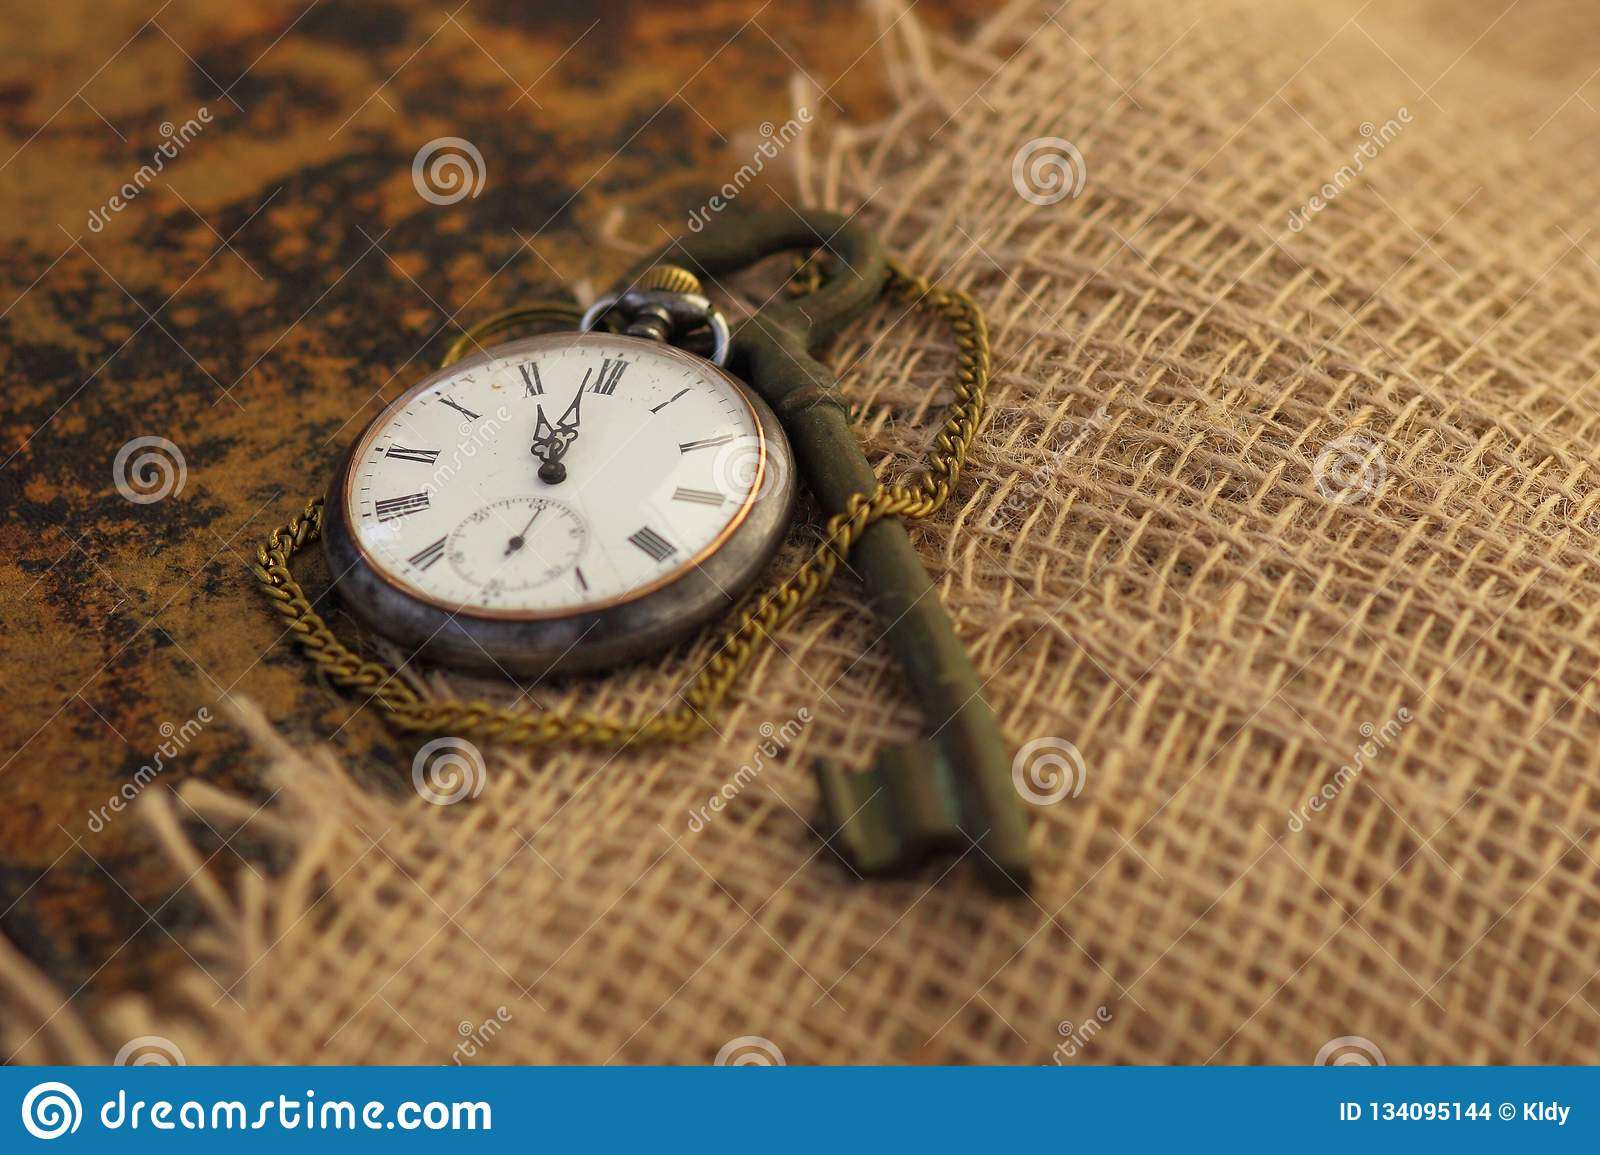 Ancient pocket watch and key on old folio half-covered with old sackcloth. Time passing concept. Knowledge eternity concept